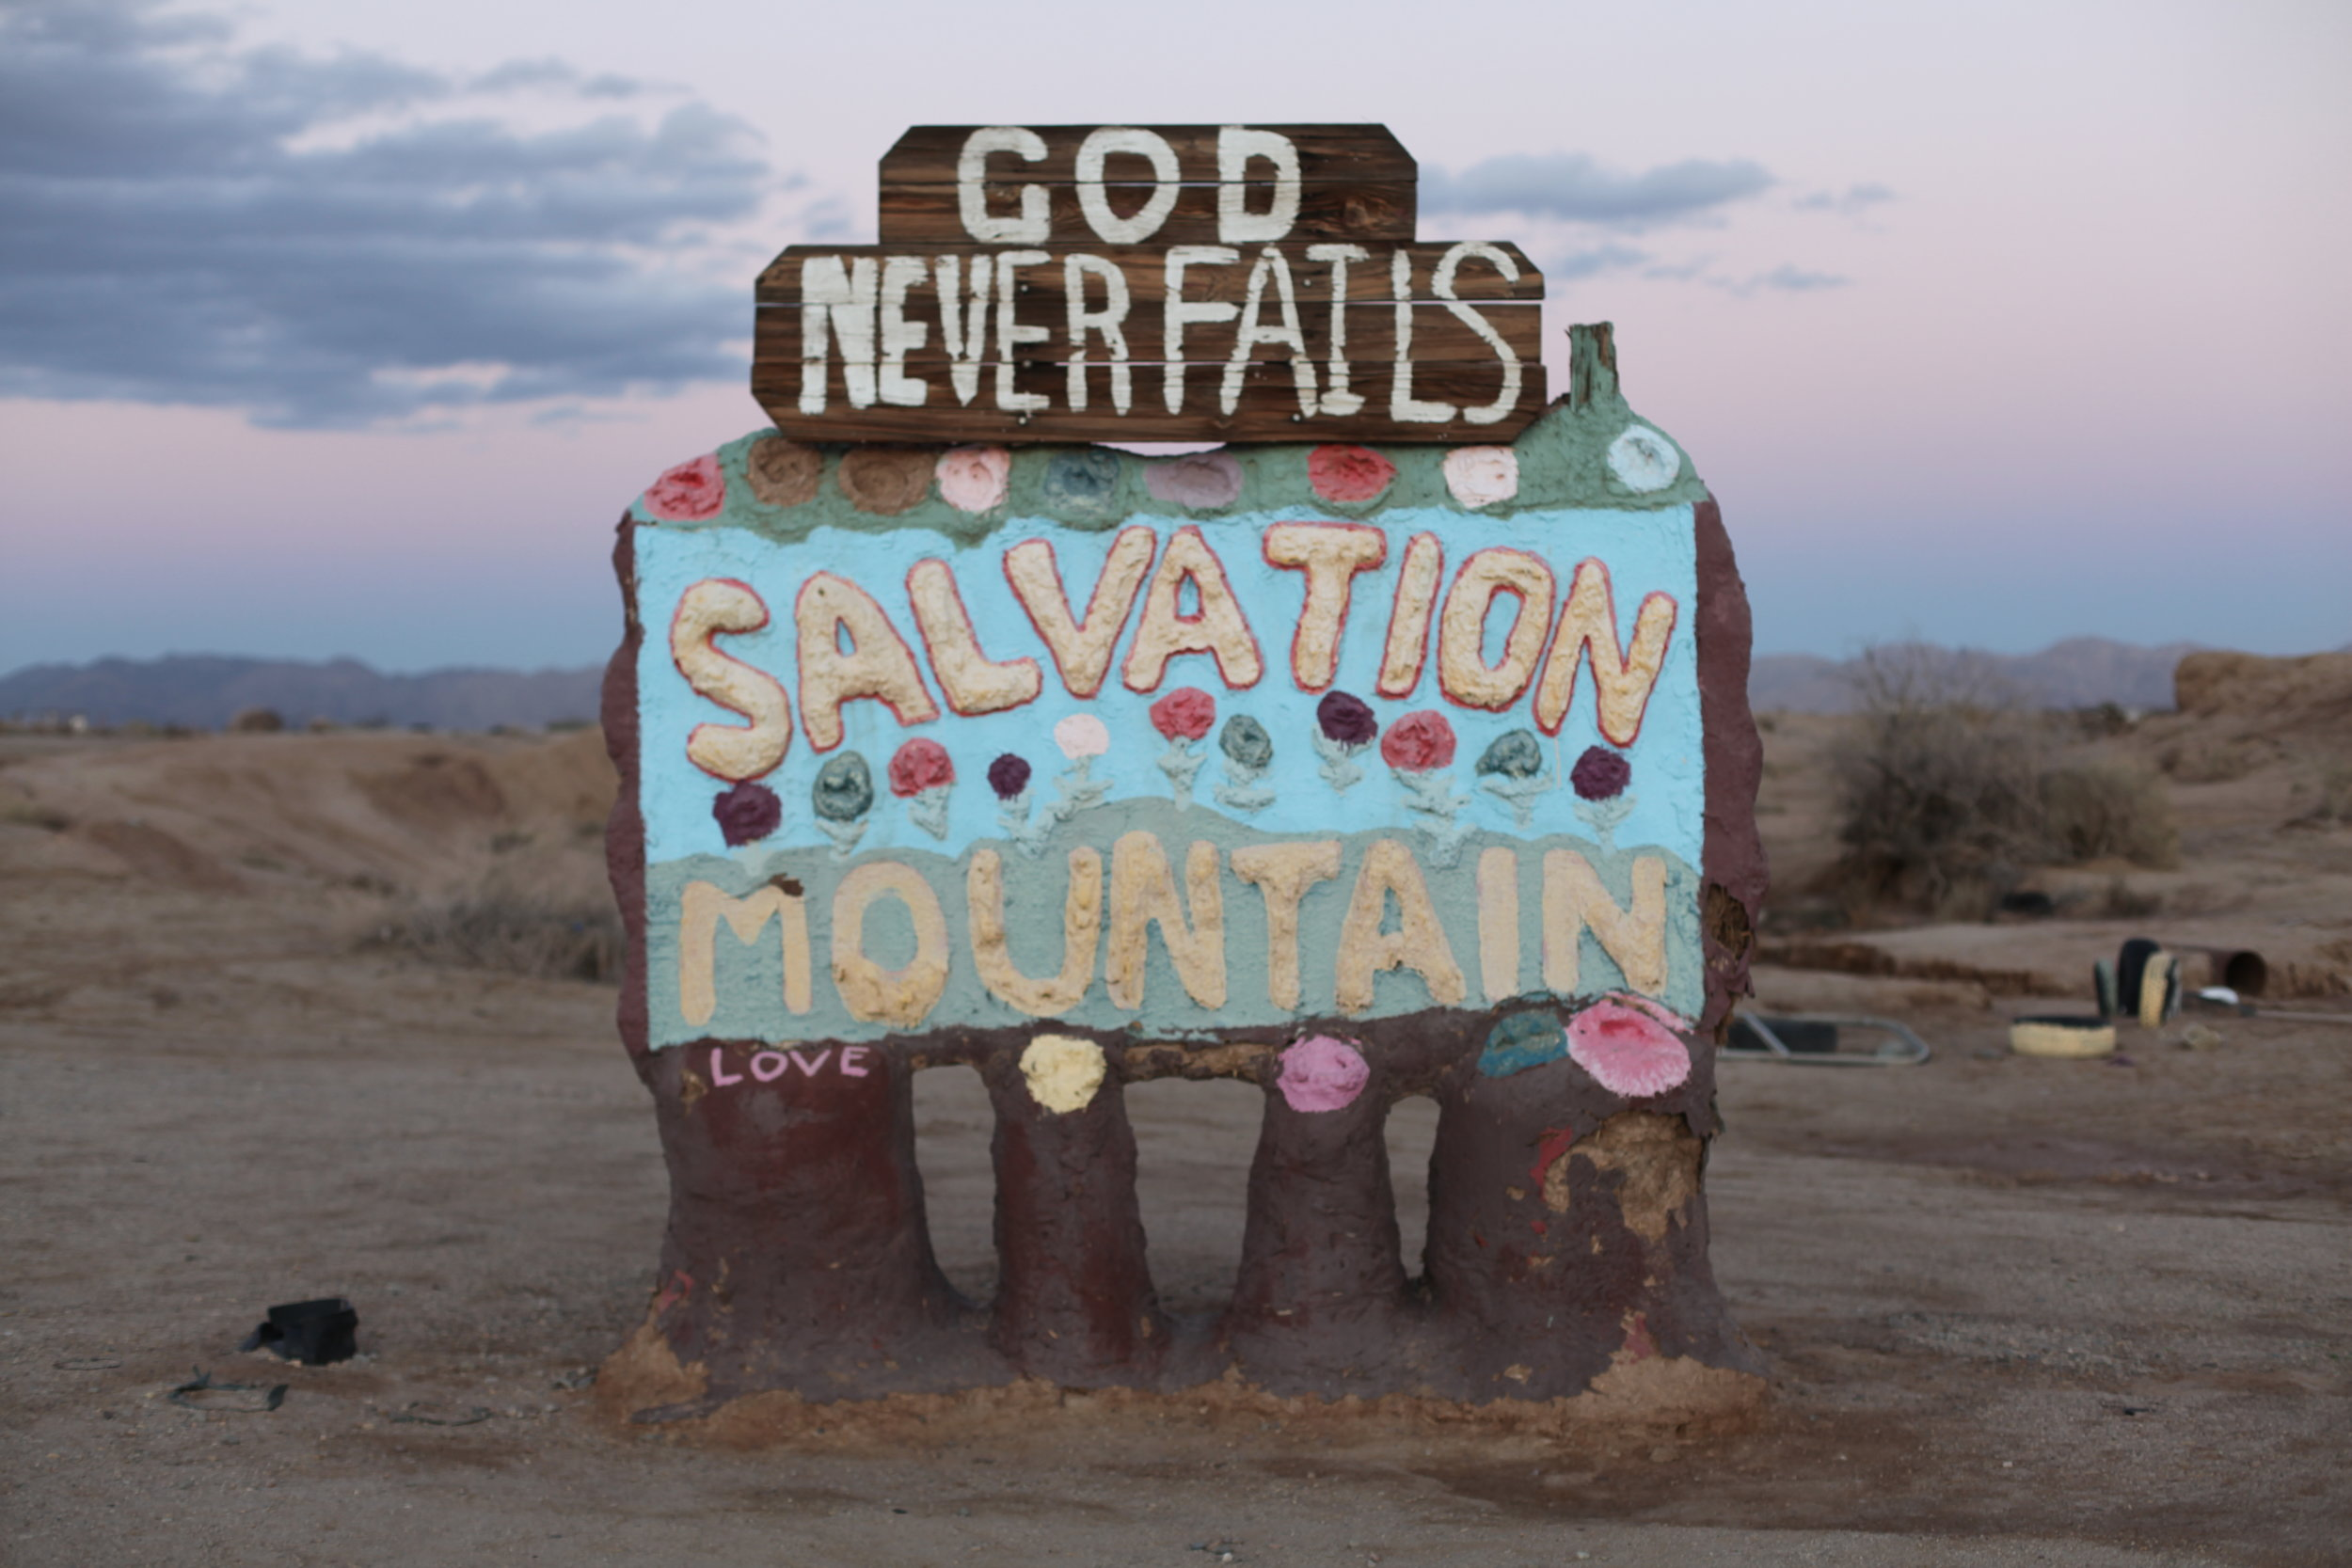 A crude sign welcomes visitors to Salvation Mountain in Slab City, Calif. at sunset on Jan. 6, 2017.(Photo by Ethan Jakob Craft.)